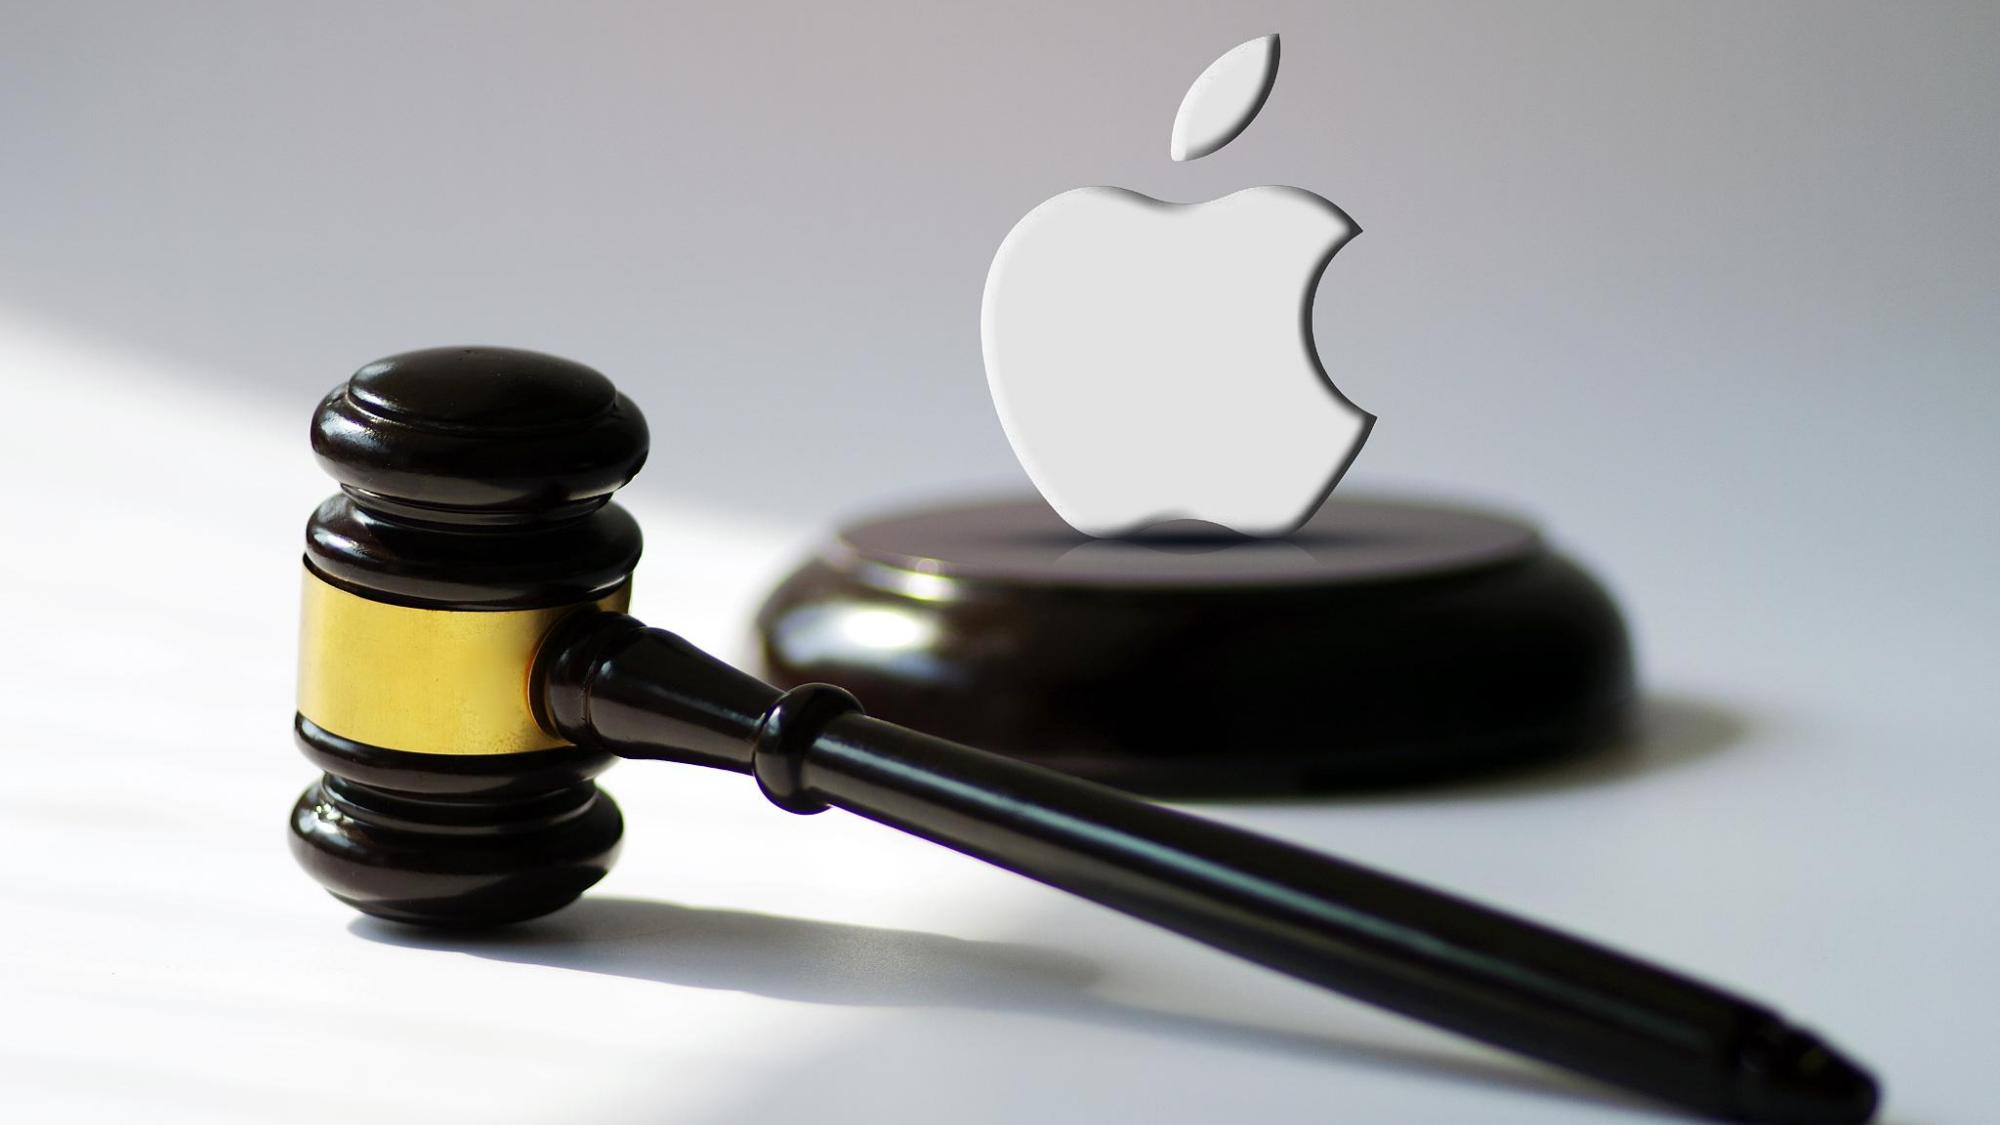 Apple has to pay $ 300 million for lost patent dispute